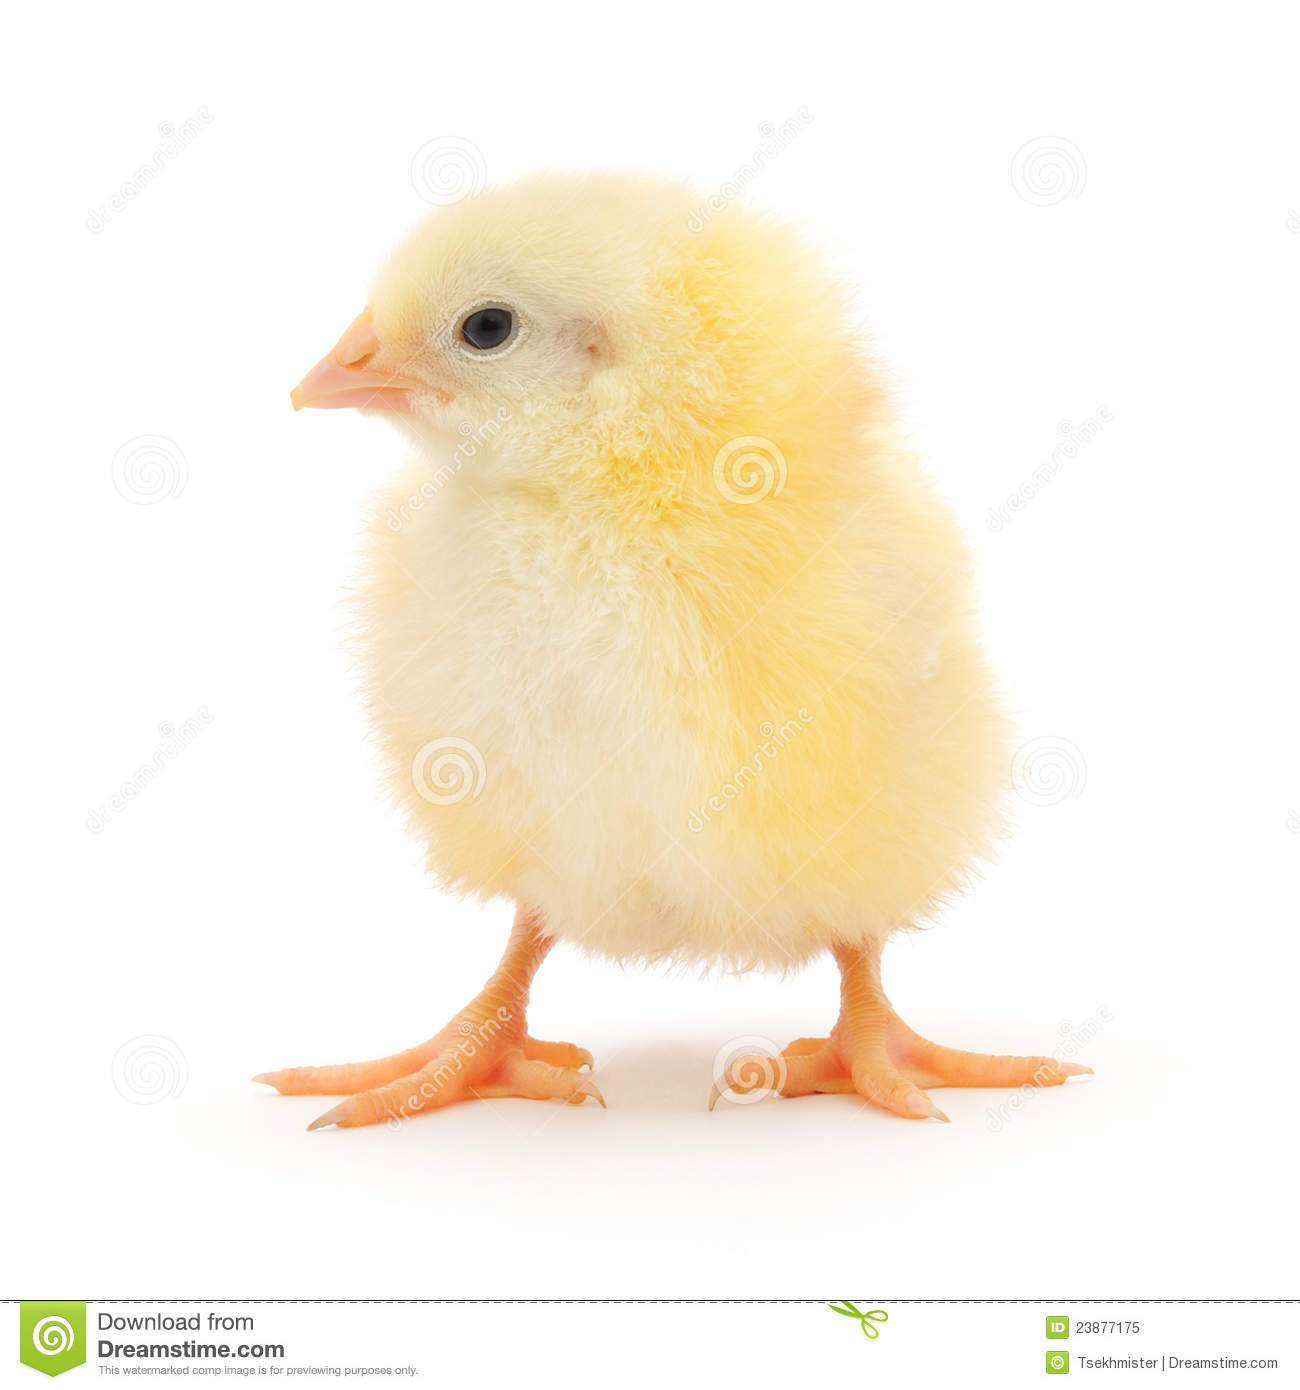 Small Chicken Royalty Free Stock Photo - Image: 23877175: http://dreamstime.com/royalty-free-stock-photo-small-chicken-image23877175